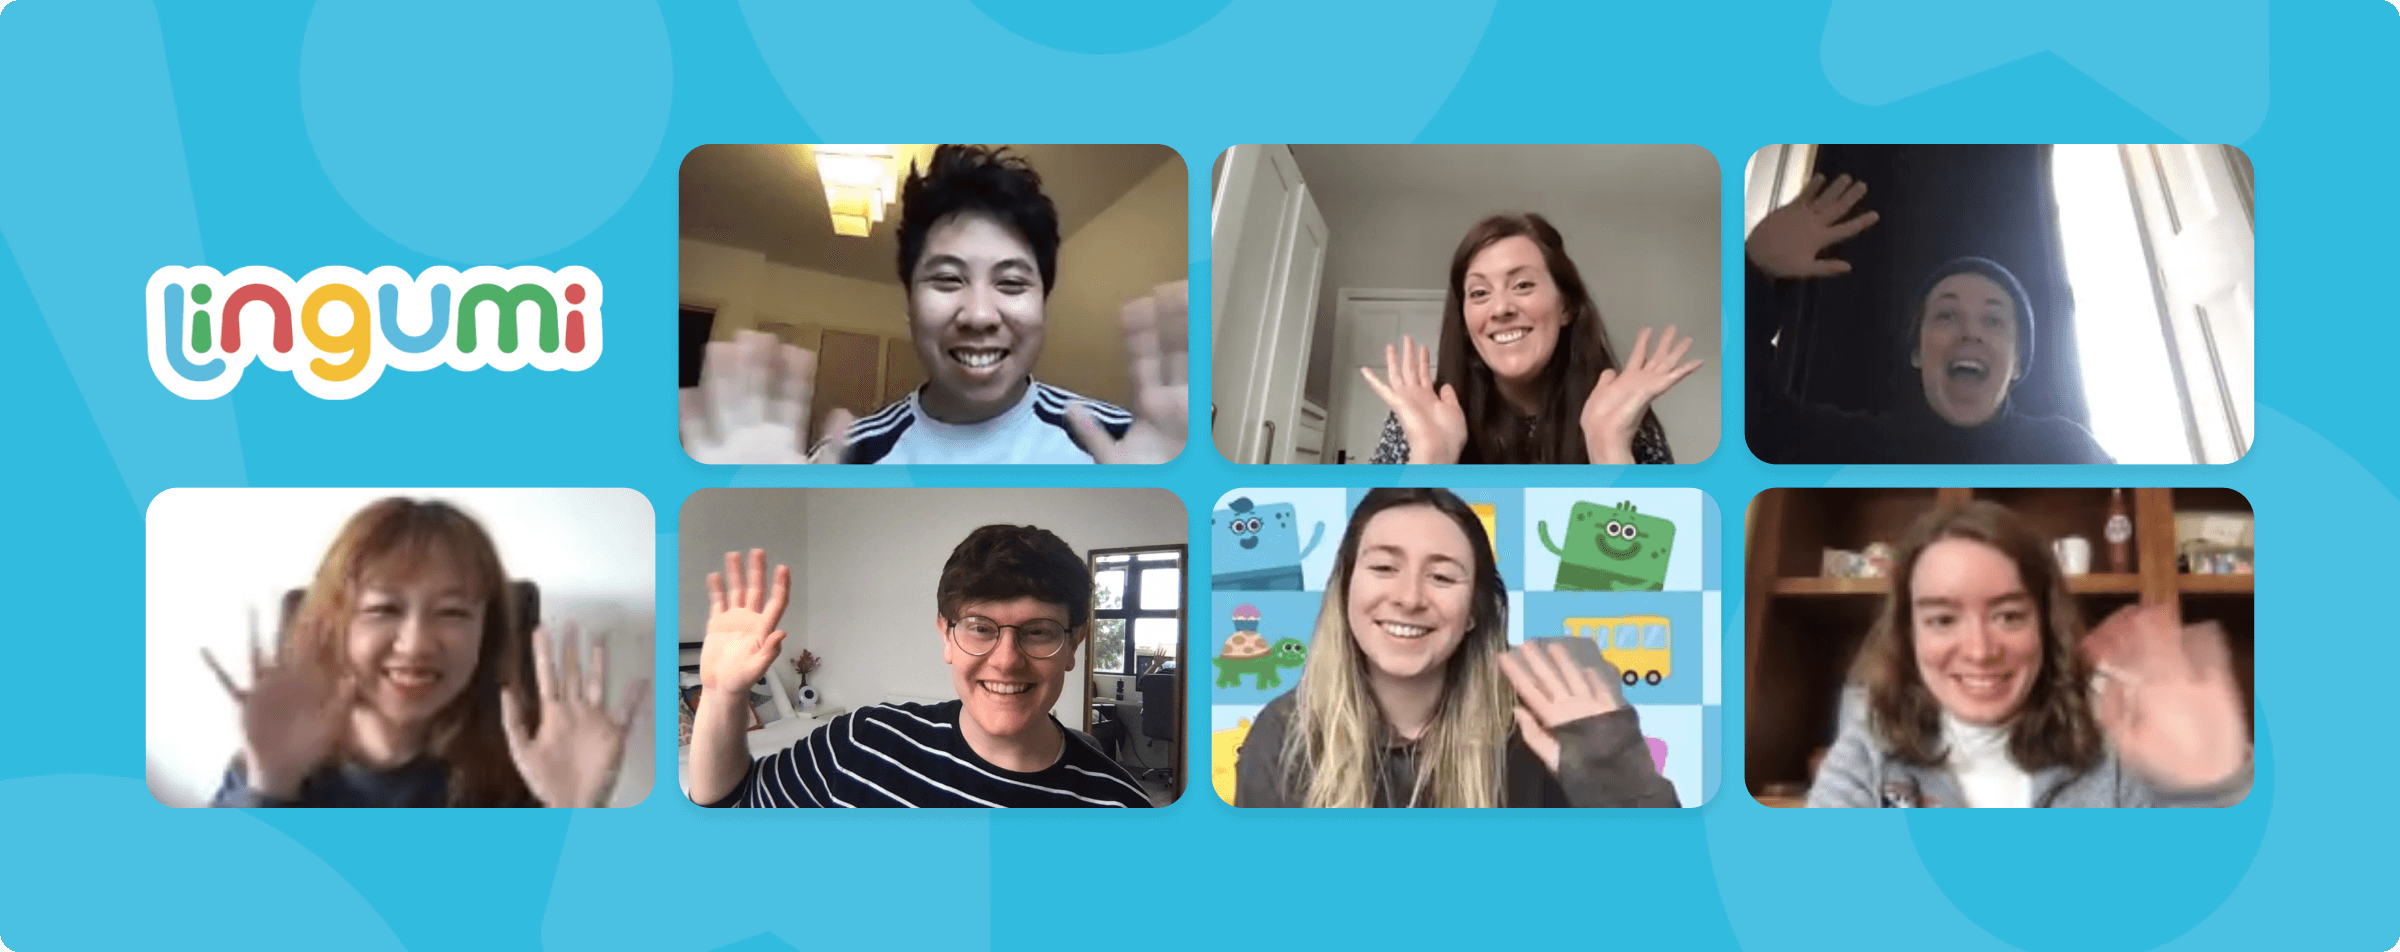 Image showing the seven members of the Lingumi Design Team waving at the camera